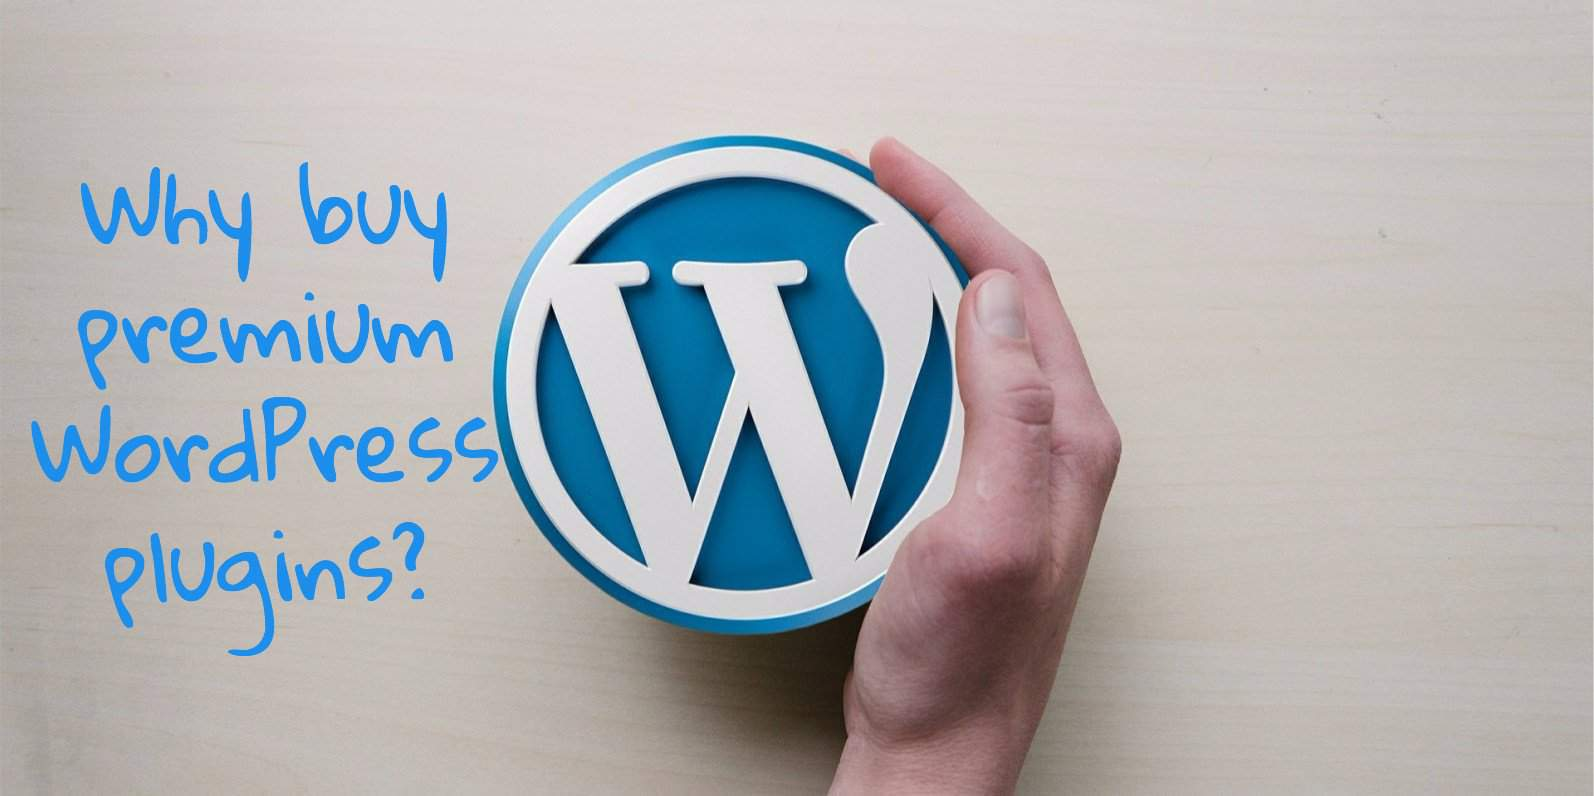 Why buy premium WordPress plugins